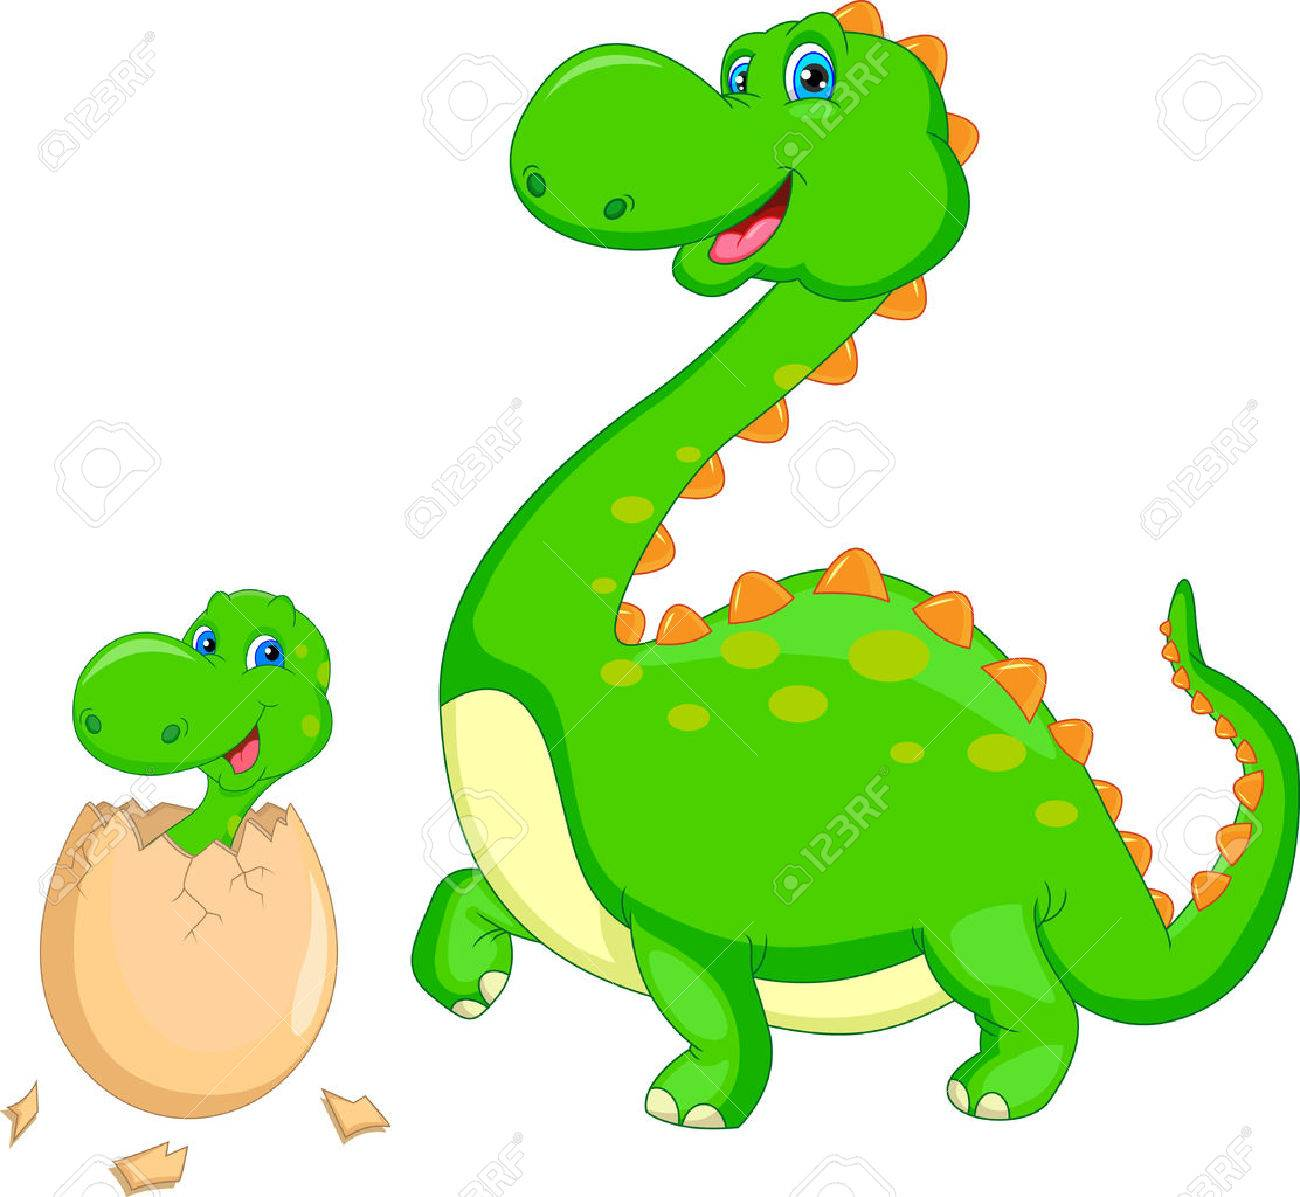 Mother And Baby Dinosaur Hatching Royalty Free Cliparts Vectors And Stock Illustration Image 32229279